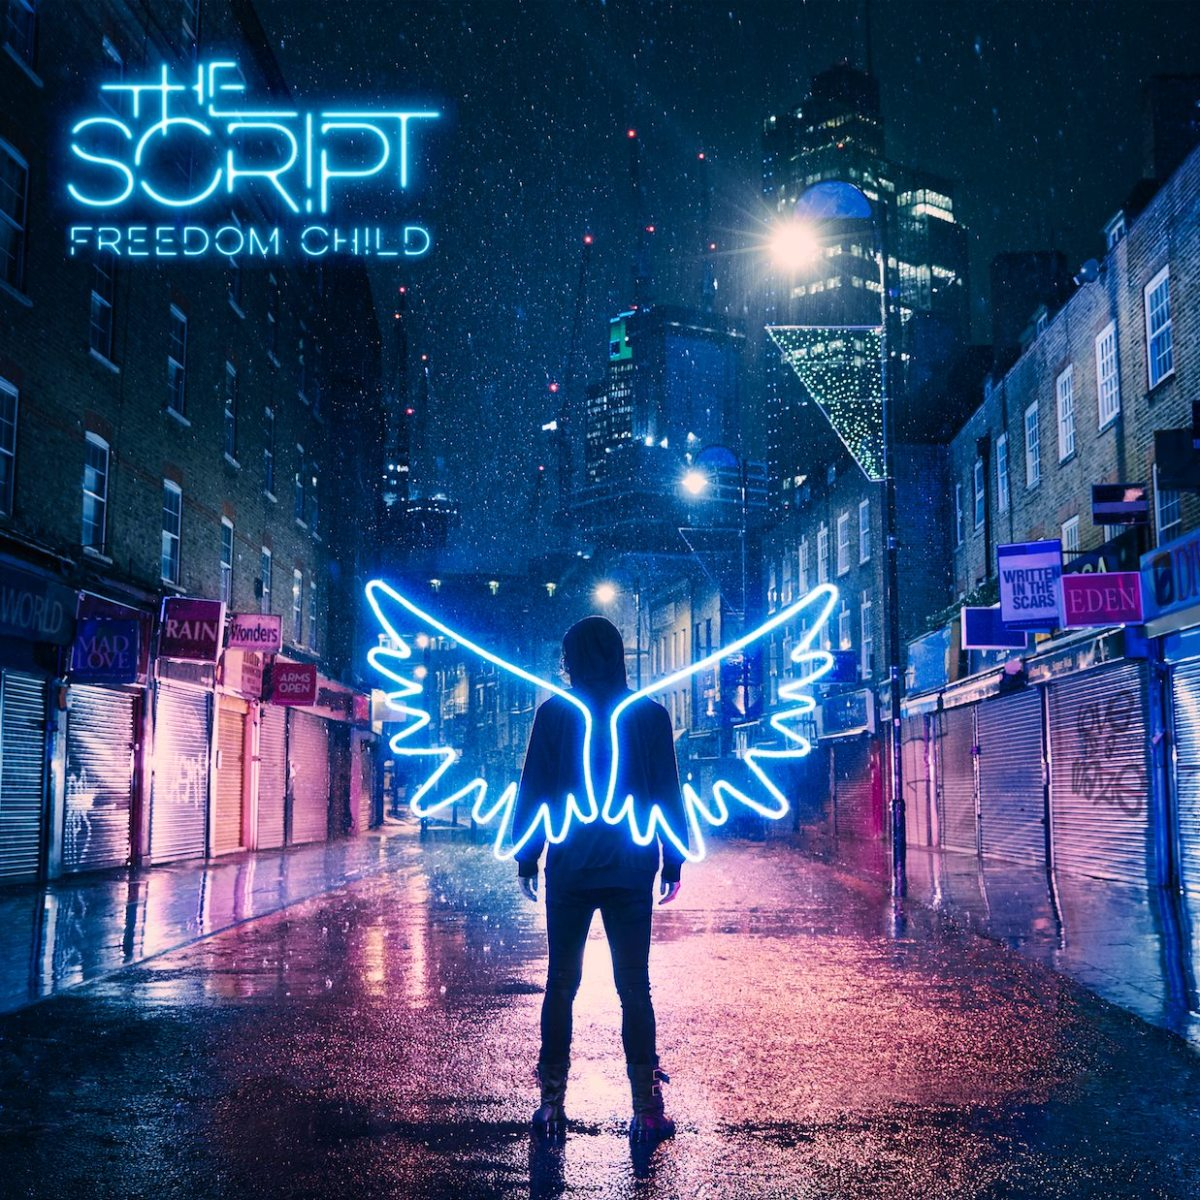 Review | The Script - Freedom Child